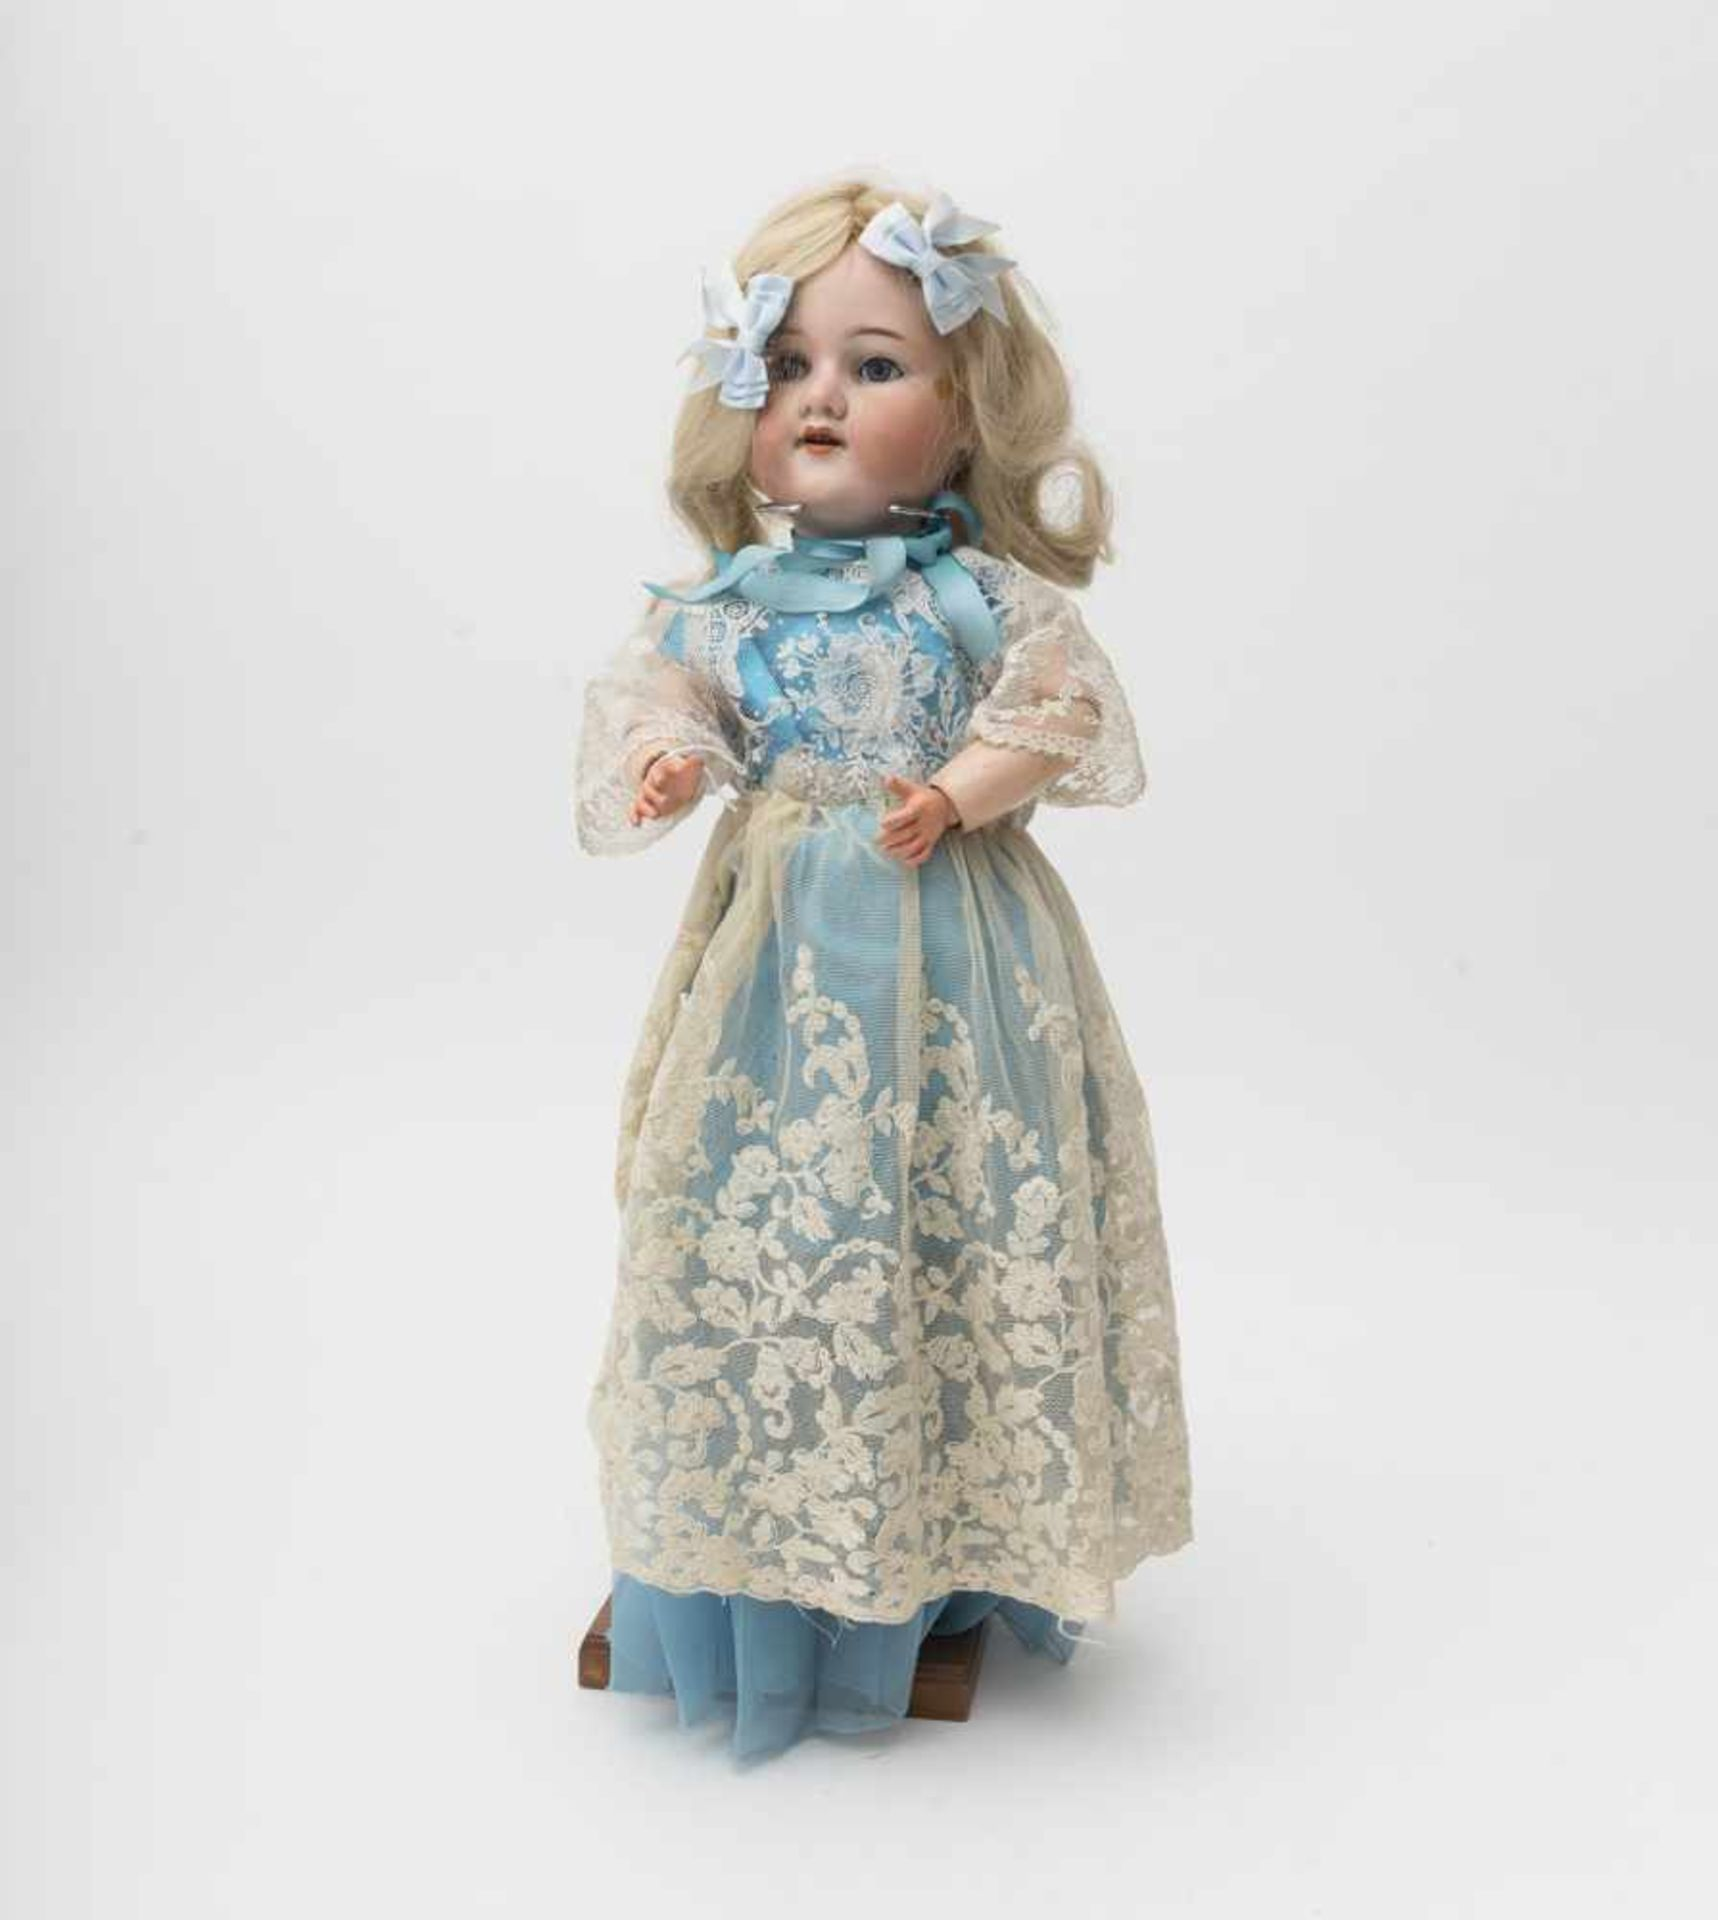 """German doll With biscuit head, open mouth, branded """"ARMAND MARSEILLE 390"""", size 6, blue sleeping"""